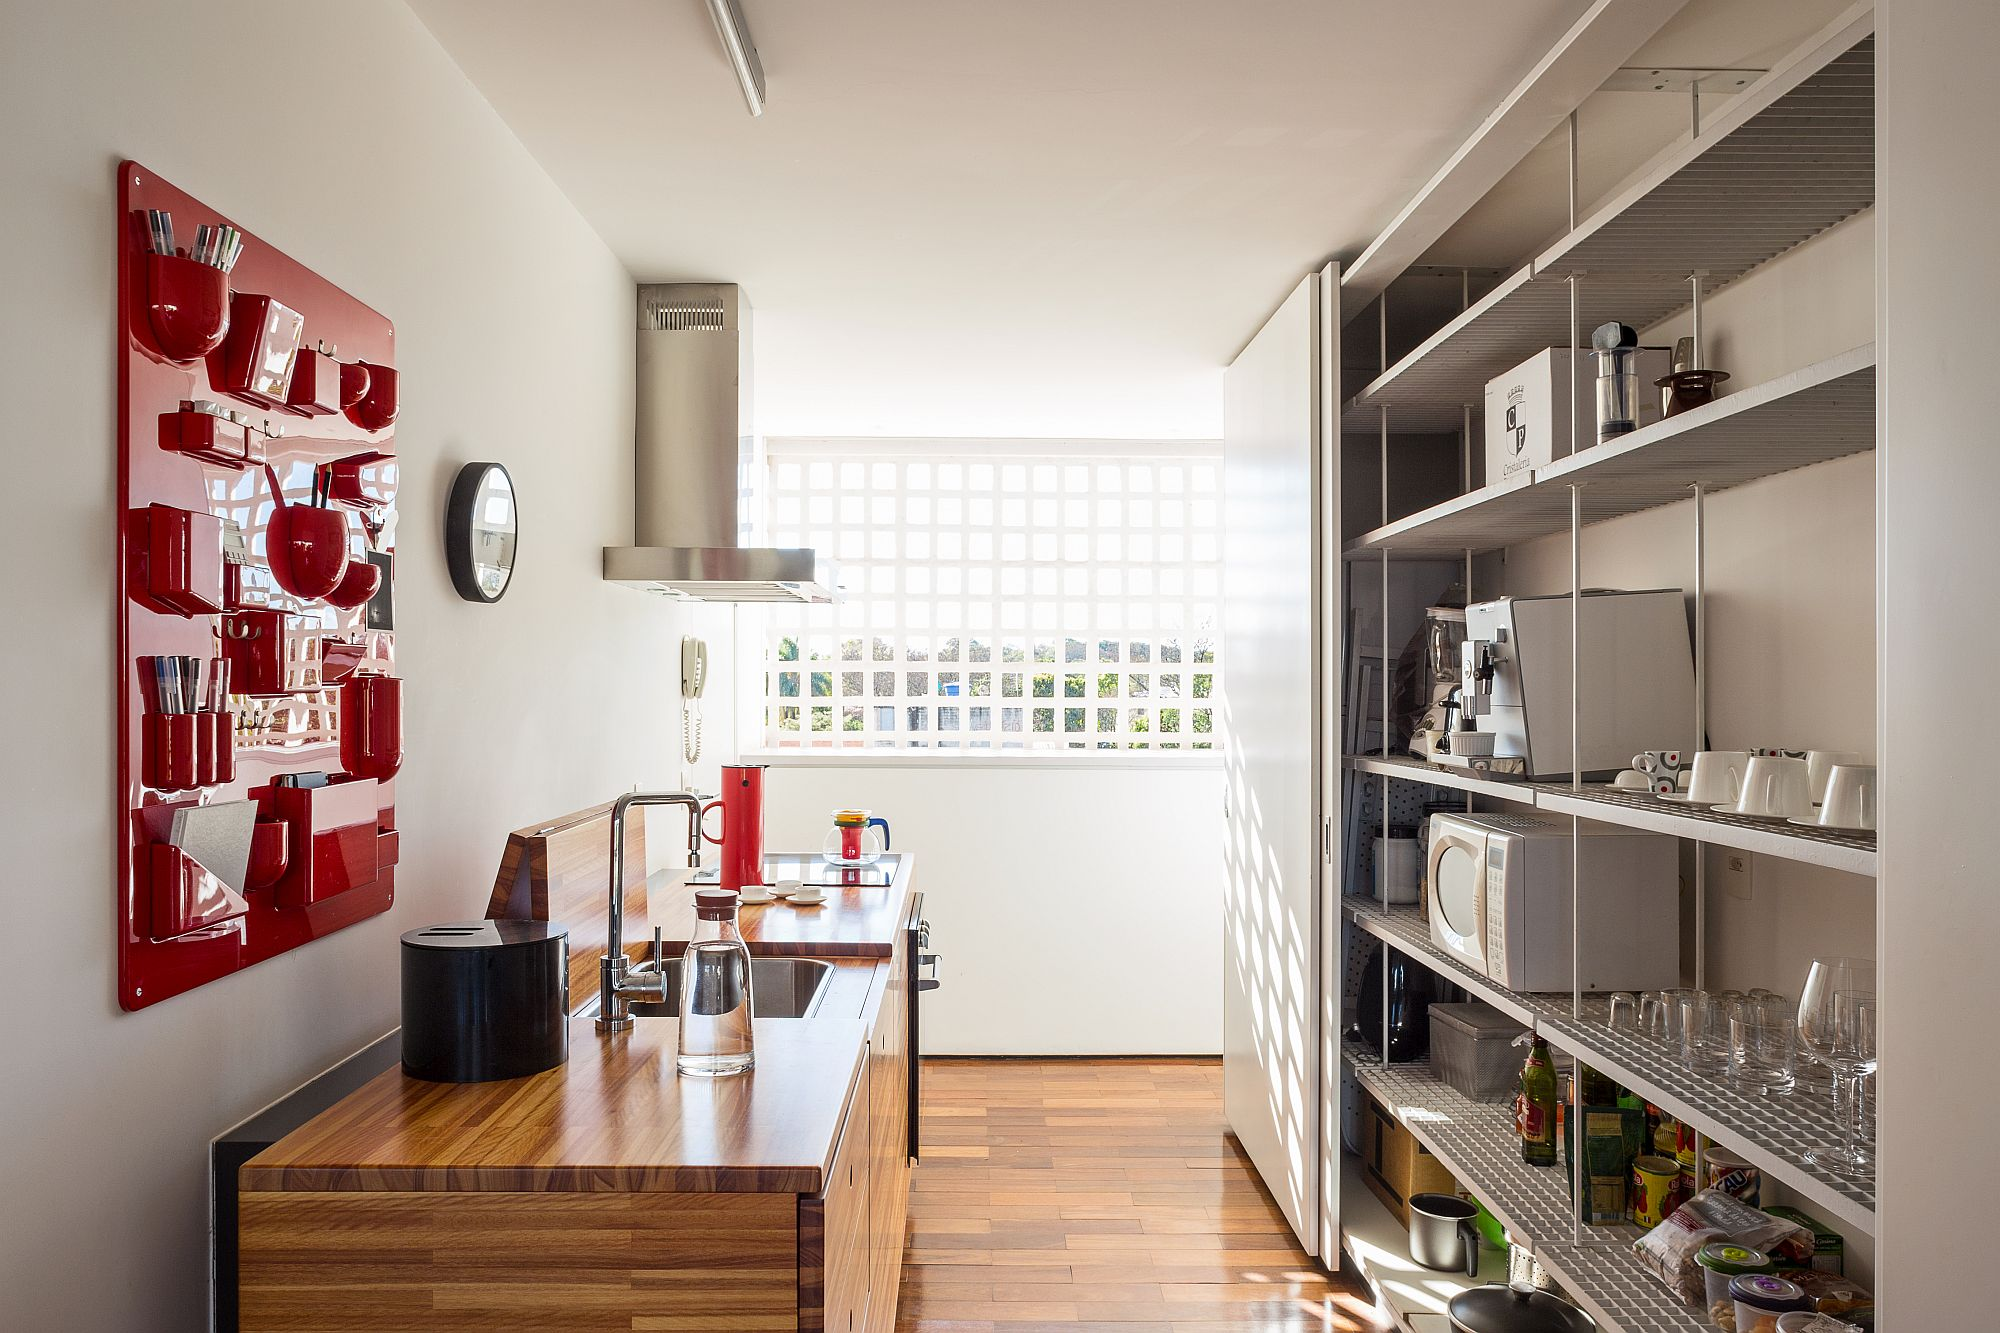 Modern kitchen with red accent storage system and stainless steel shelves